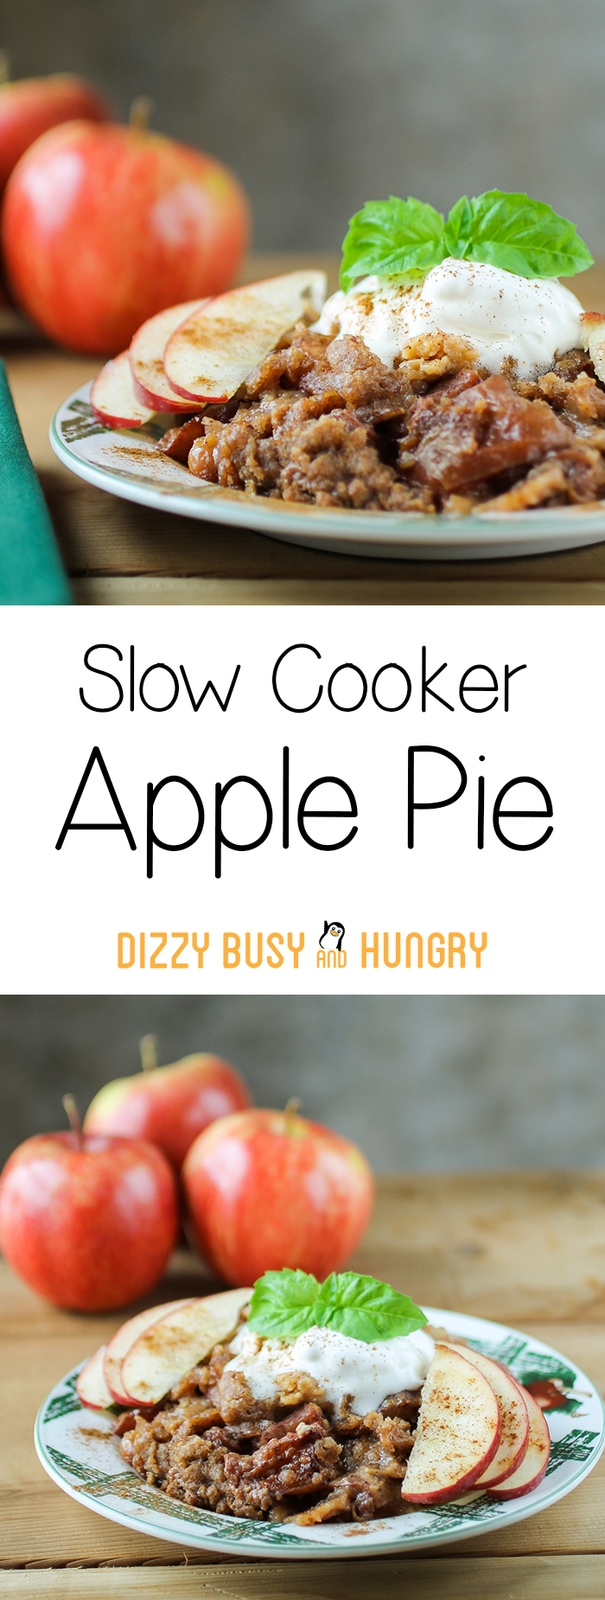 Slow Cooker Apple Pie | DizzyBusyandHungry.com - Delicious apple pie taste without all the fuss!